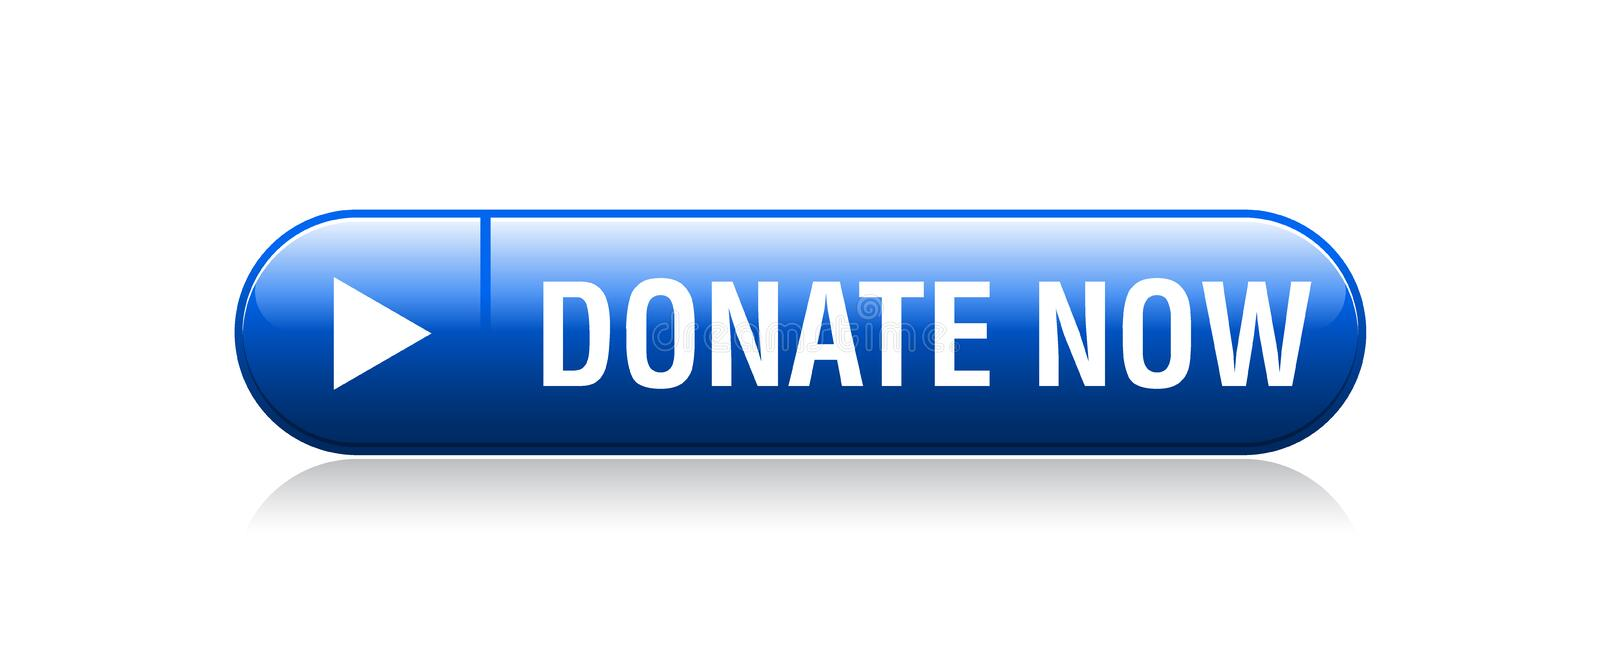 Donate now button. Donate now web button - editable vector illustration on isolated white background stock illustration